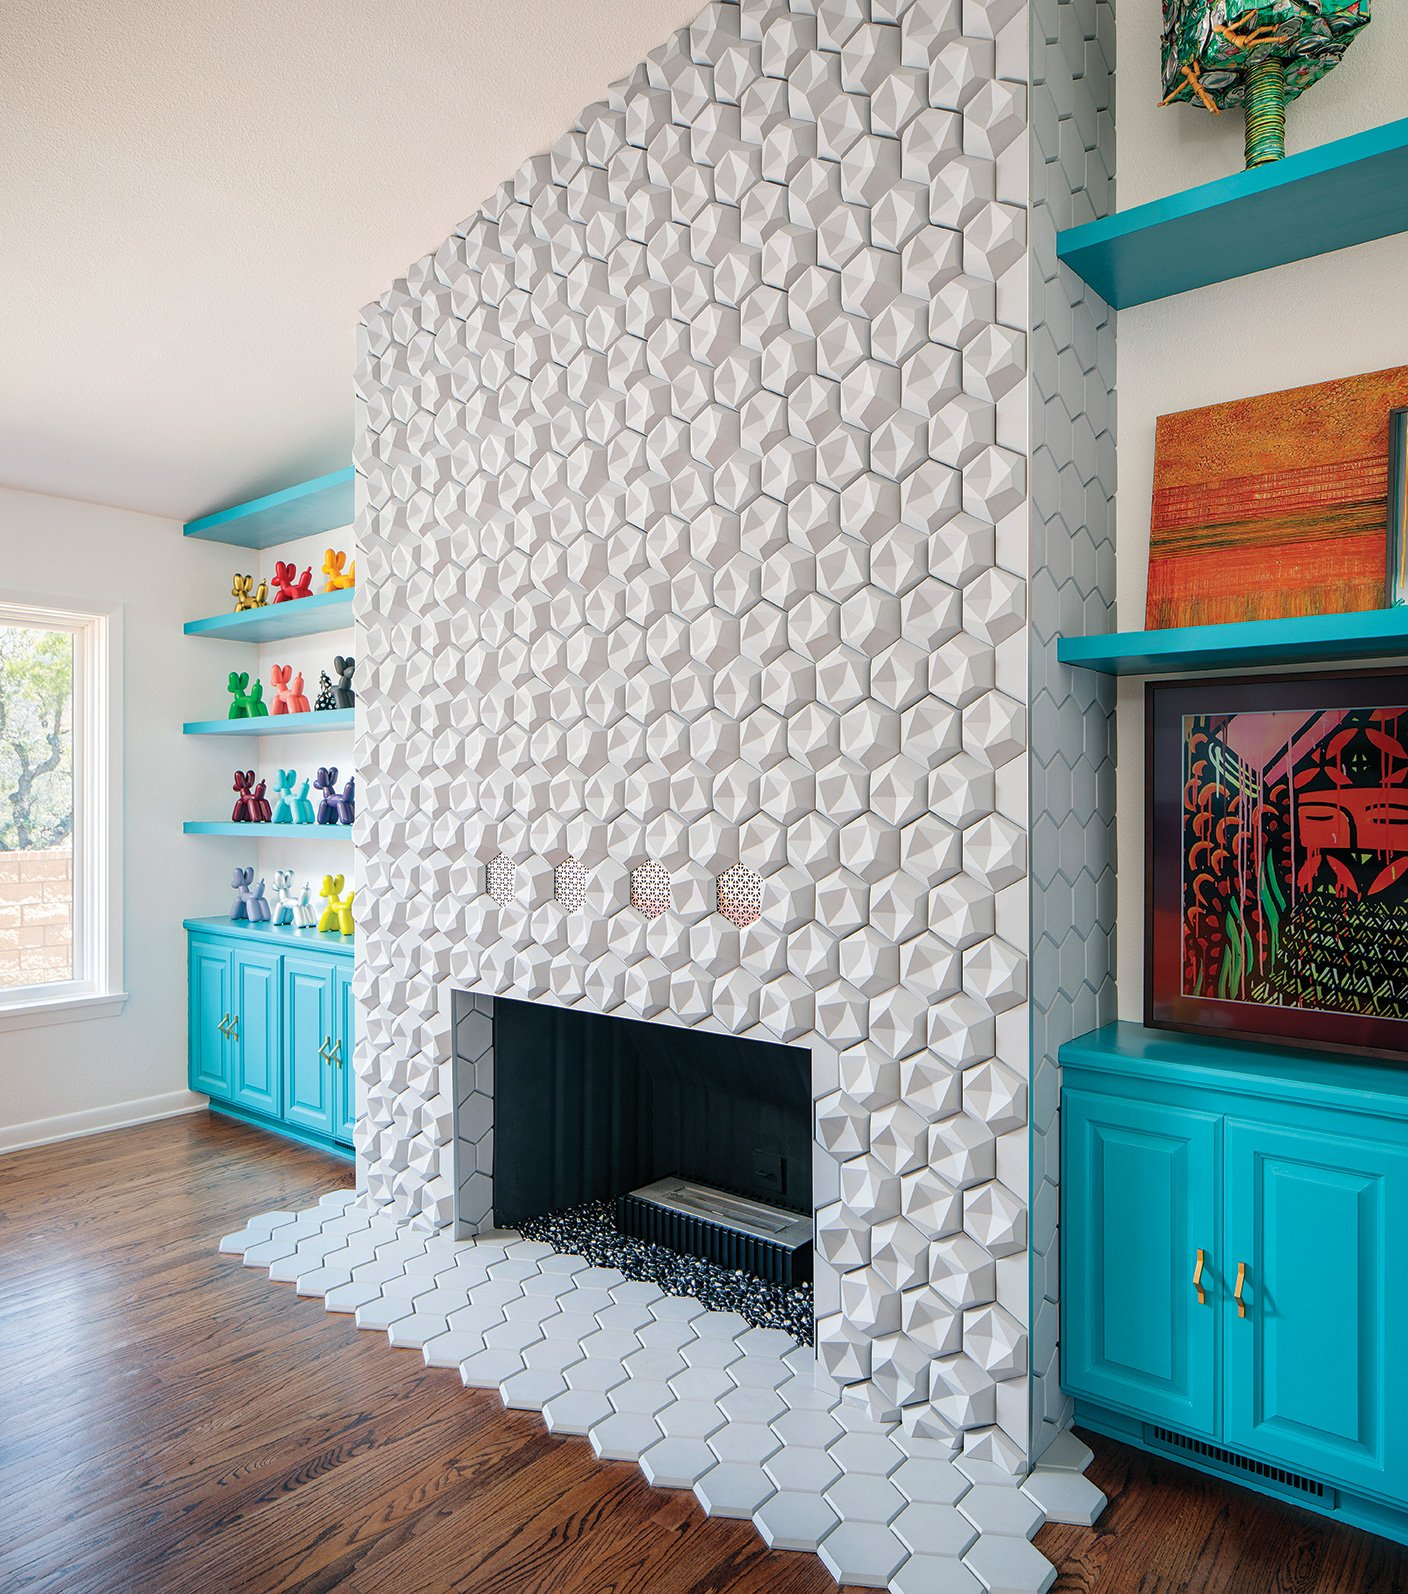 jenna pilant fireplace